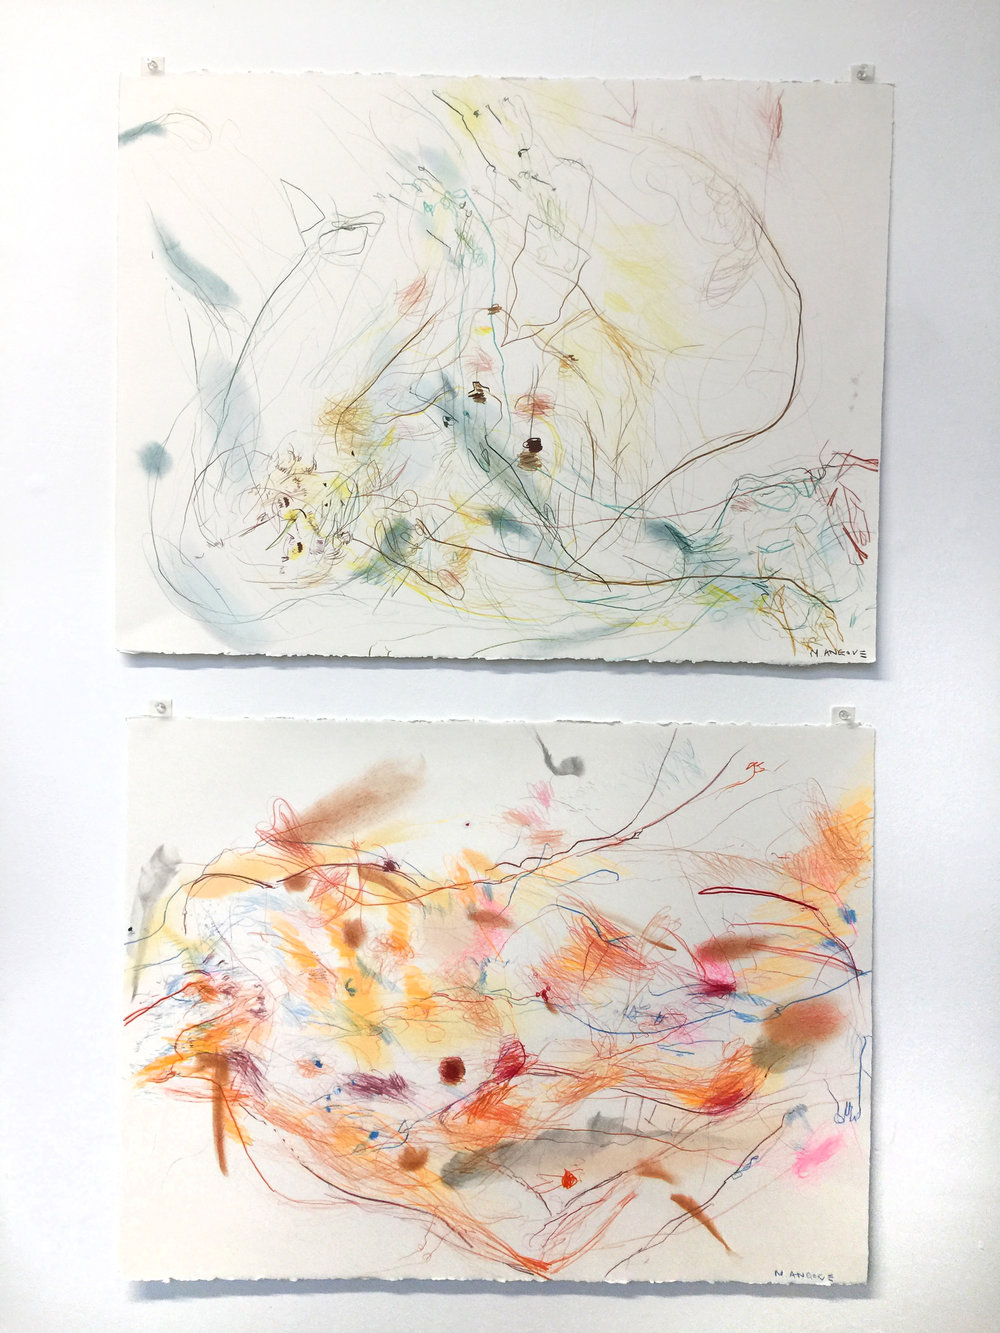 Michael Angove 'Untitled Figure 2' and 'Untitled Figure 3' 2018 Pencil on Paper